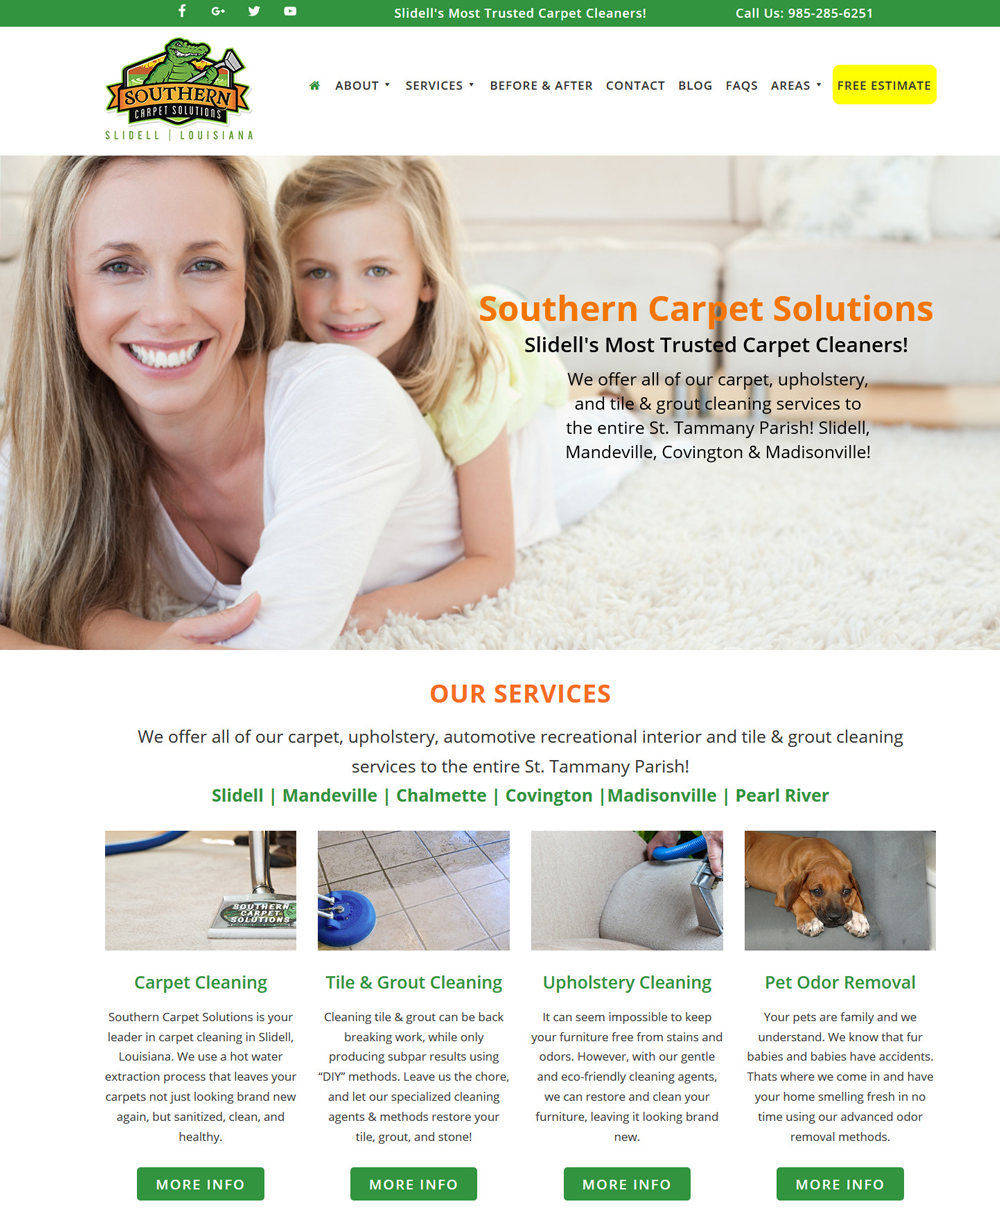 Slidell's-Carpet,-Tile,-Upholstery-and-Pet-Odor-Cleaning-Services